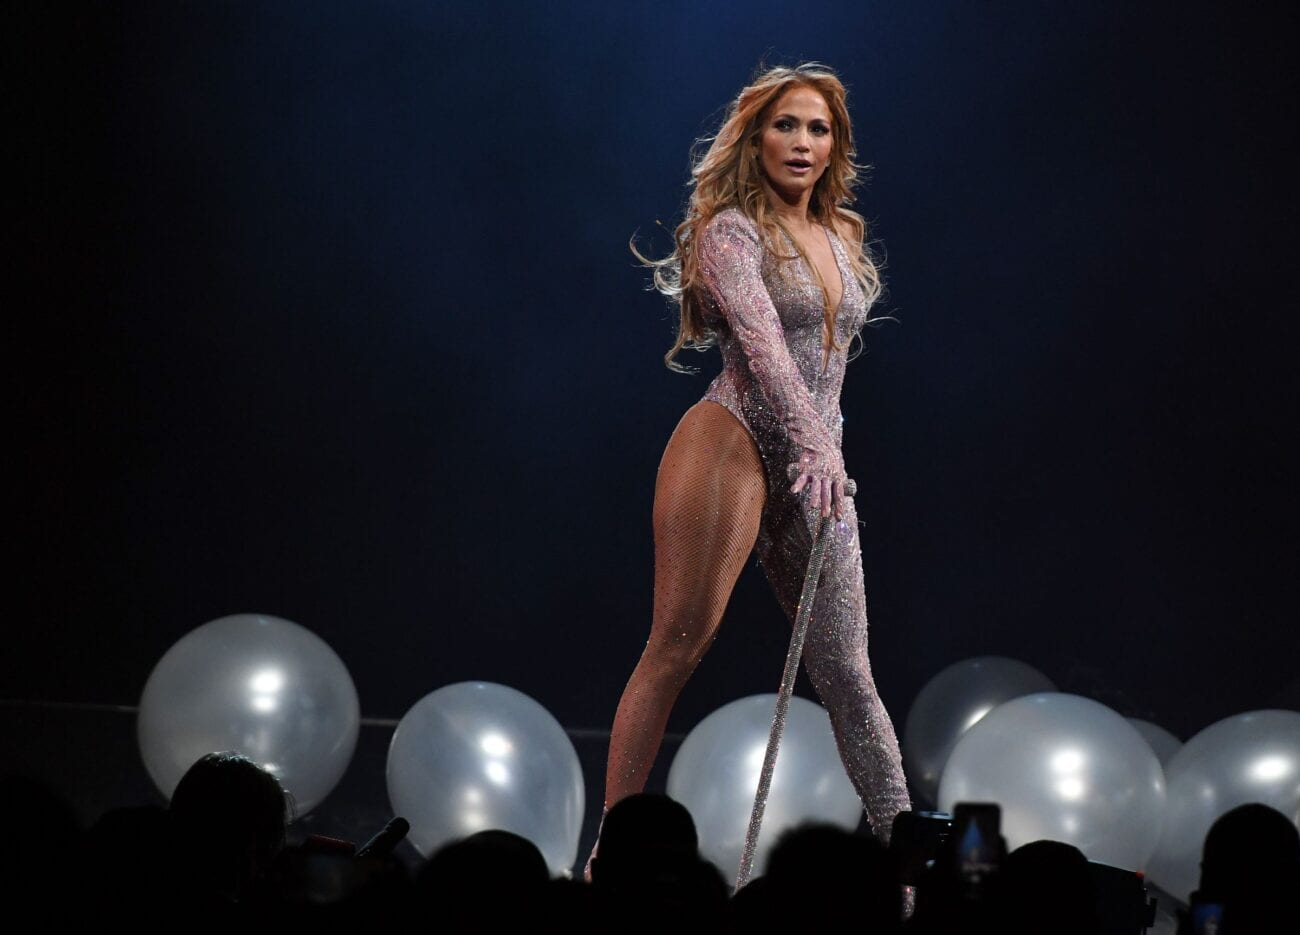 Jennifer Lopez is nearly nude as she poses in tiny